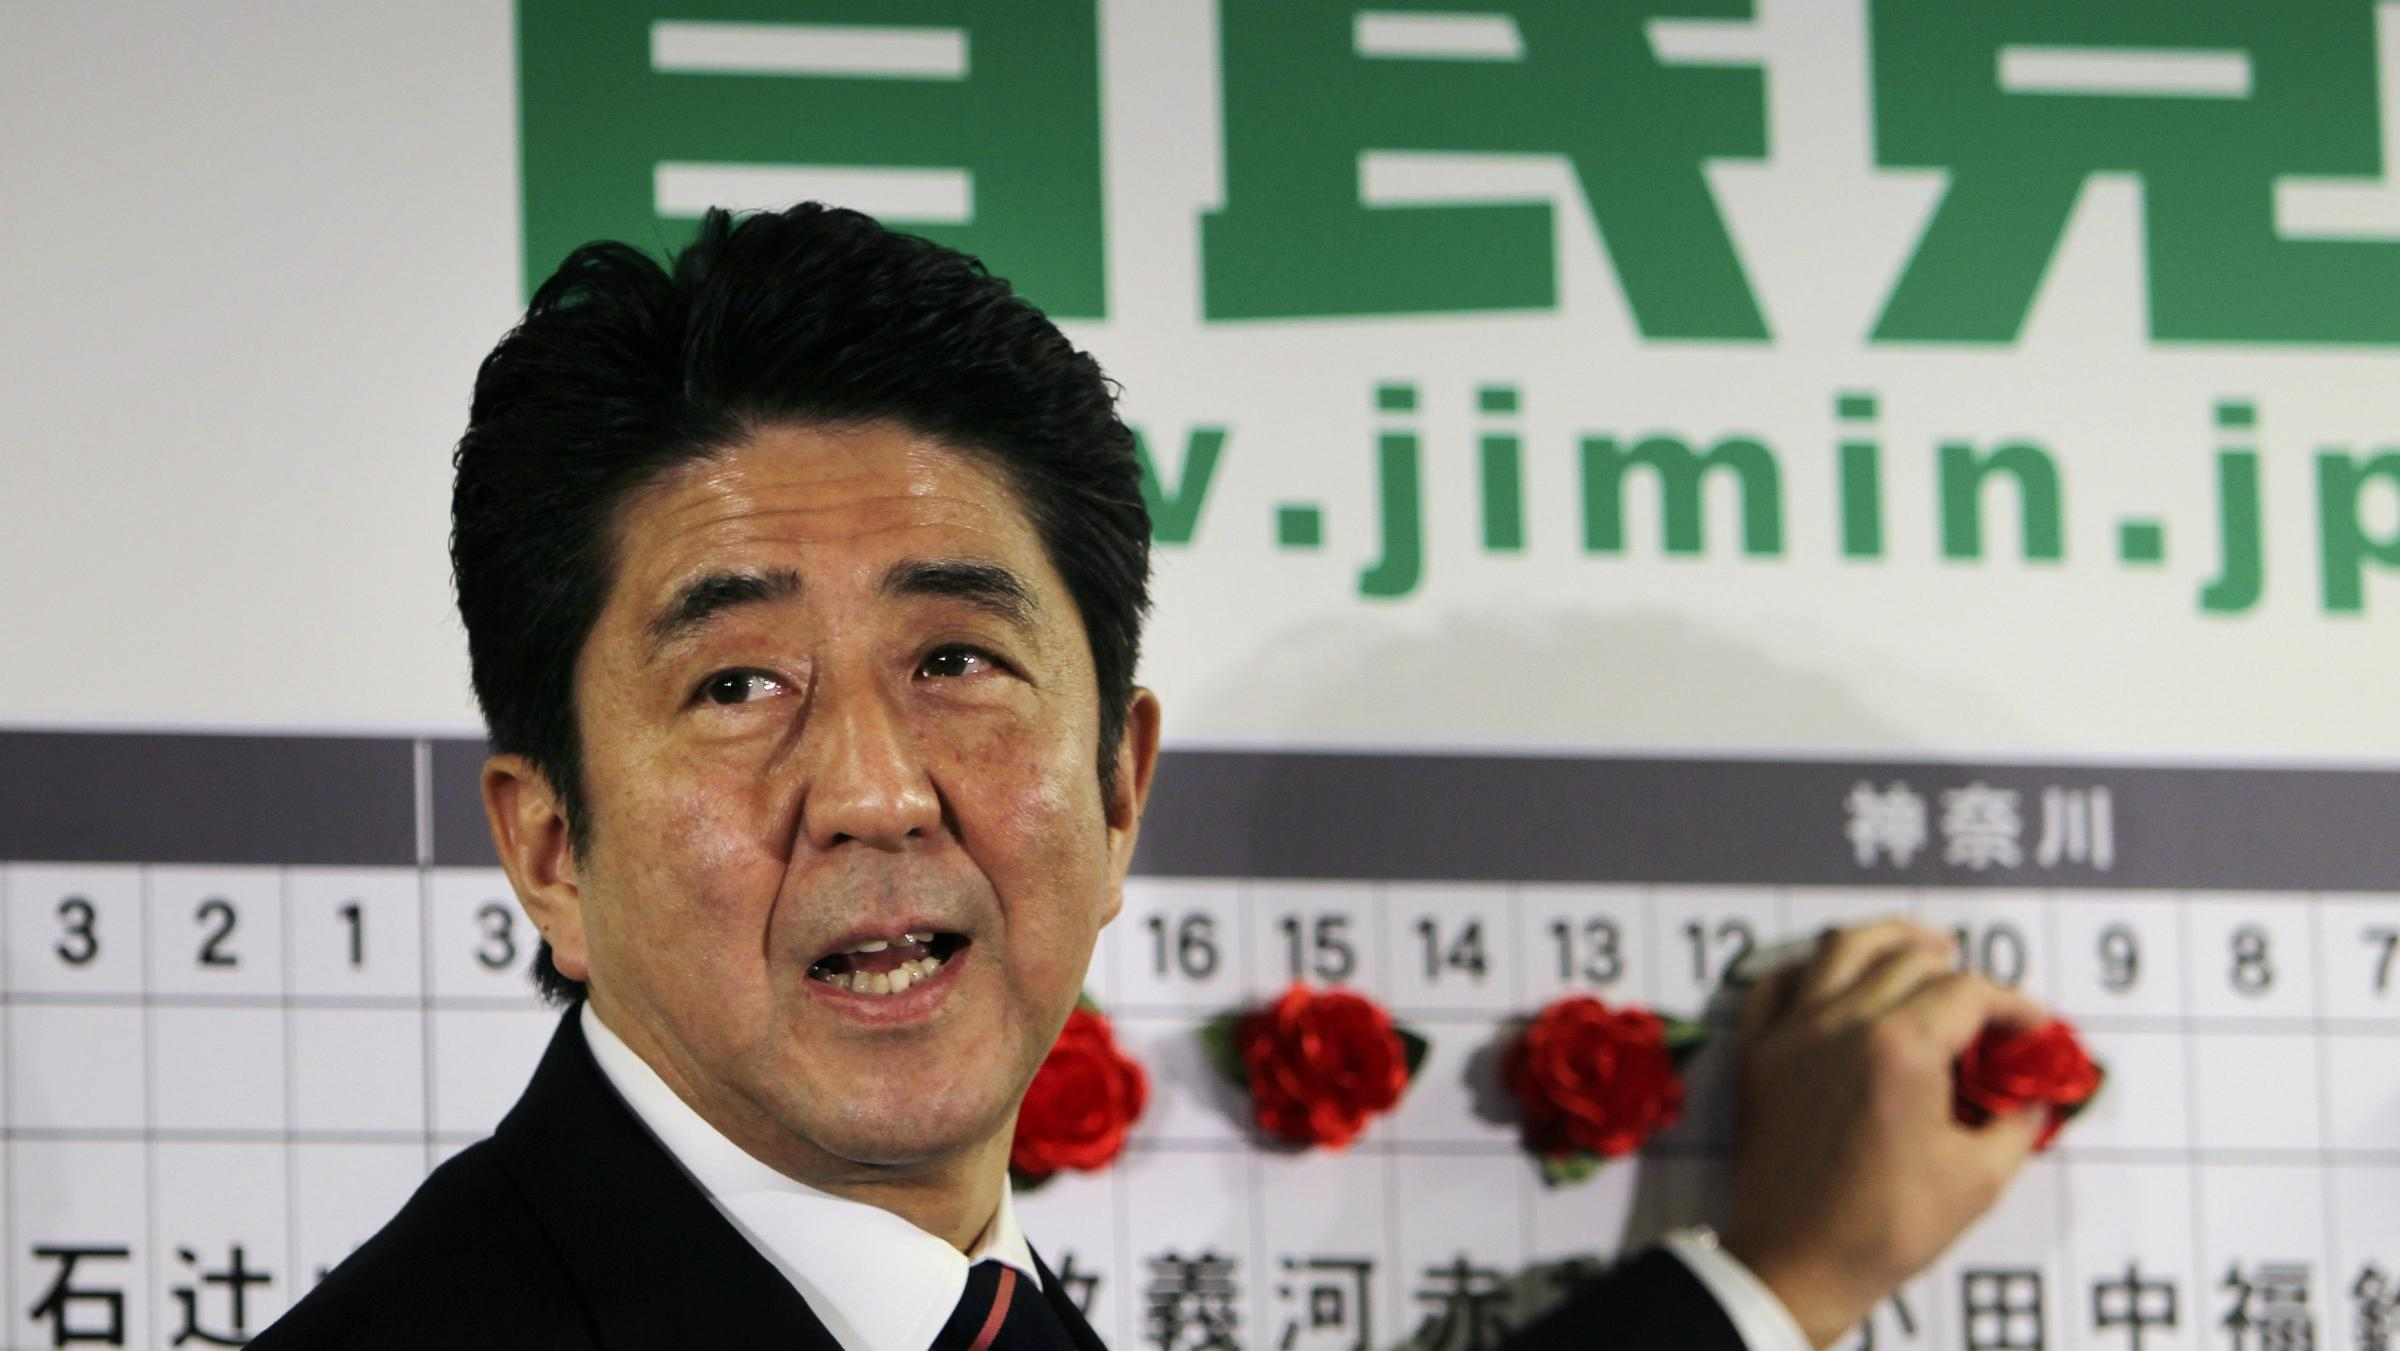 japanese politics is japan democratic Latest news and analysis about japanese politics september 12, 2018  the japan news partners close  former secretary general of the ruling liberal democratic .